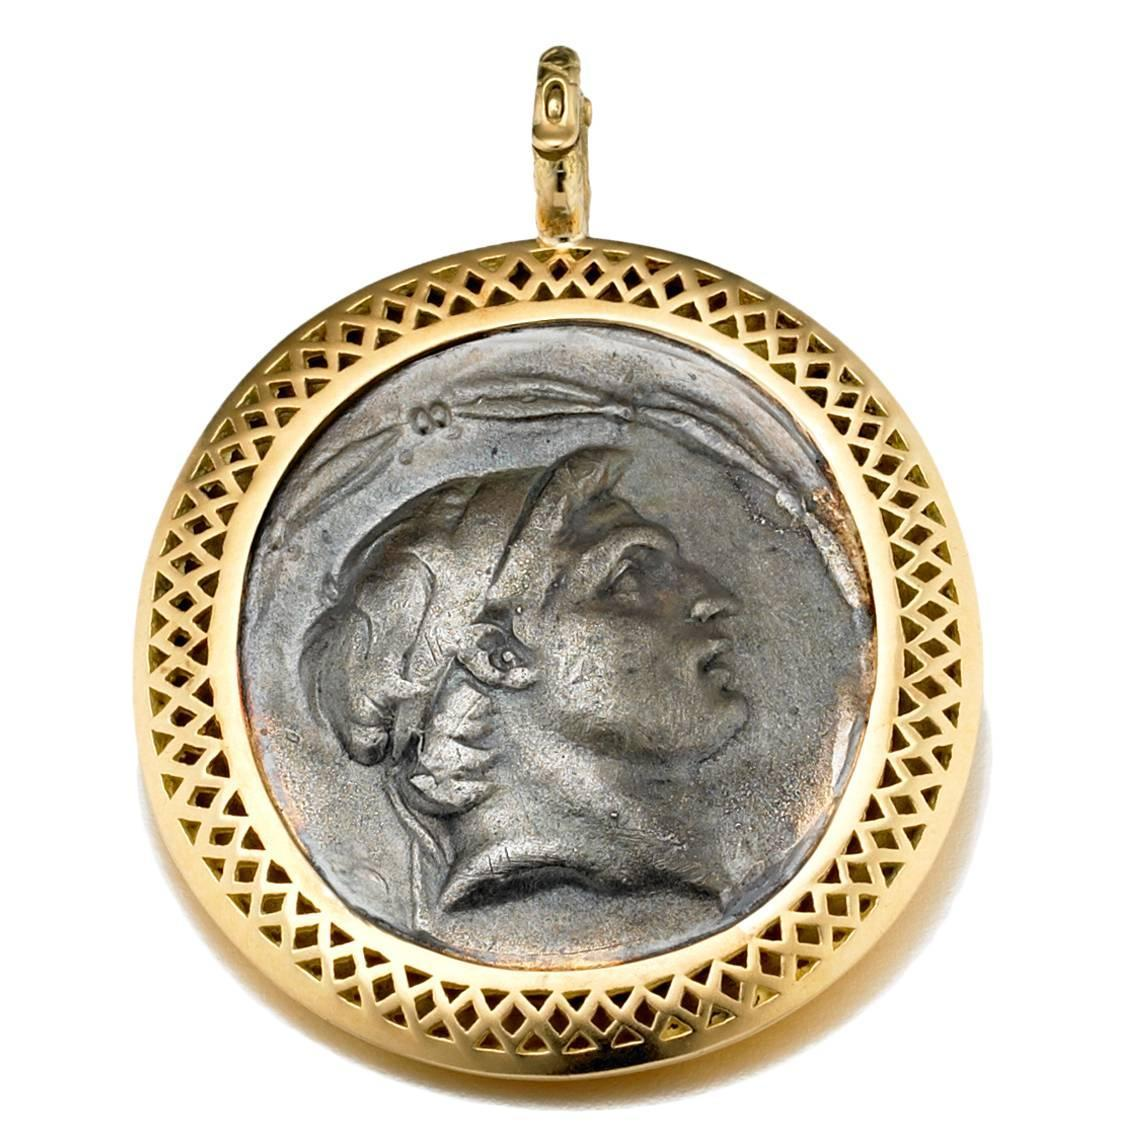 Ray griffiths sterling gold coin replica crownwork pendant for Carolyn tyler jewelry collection